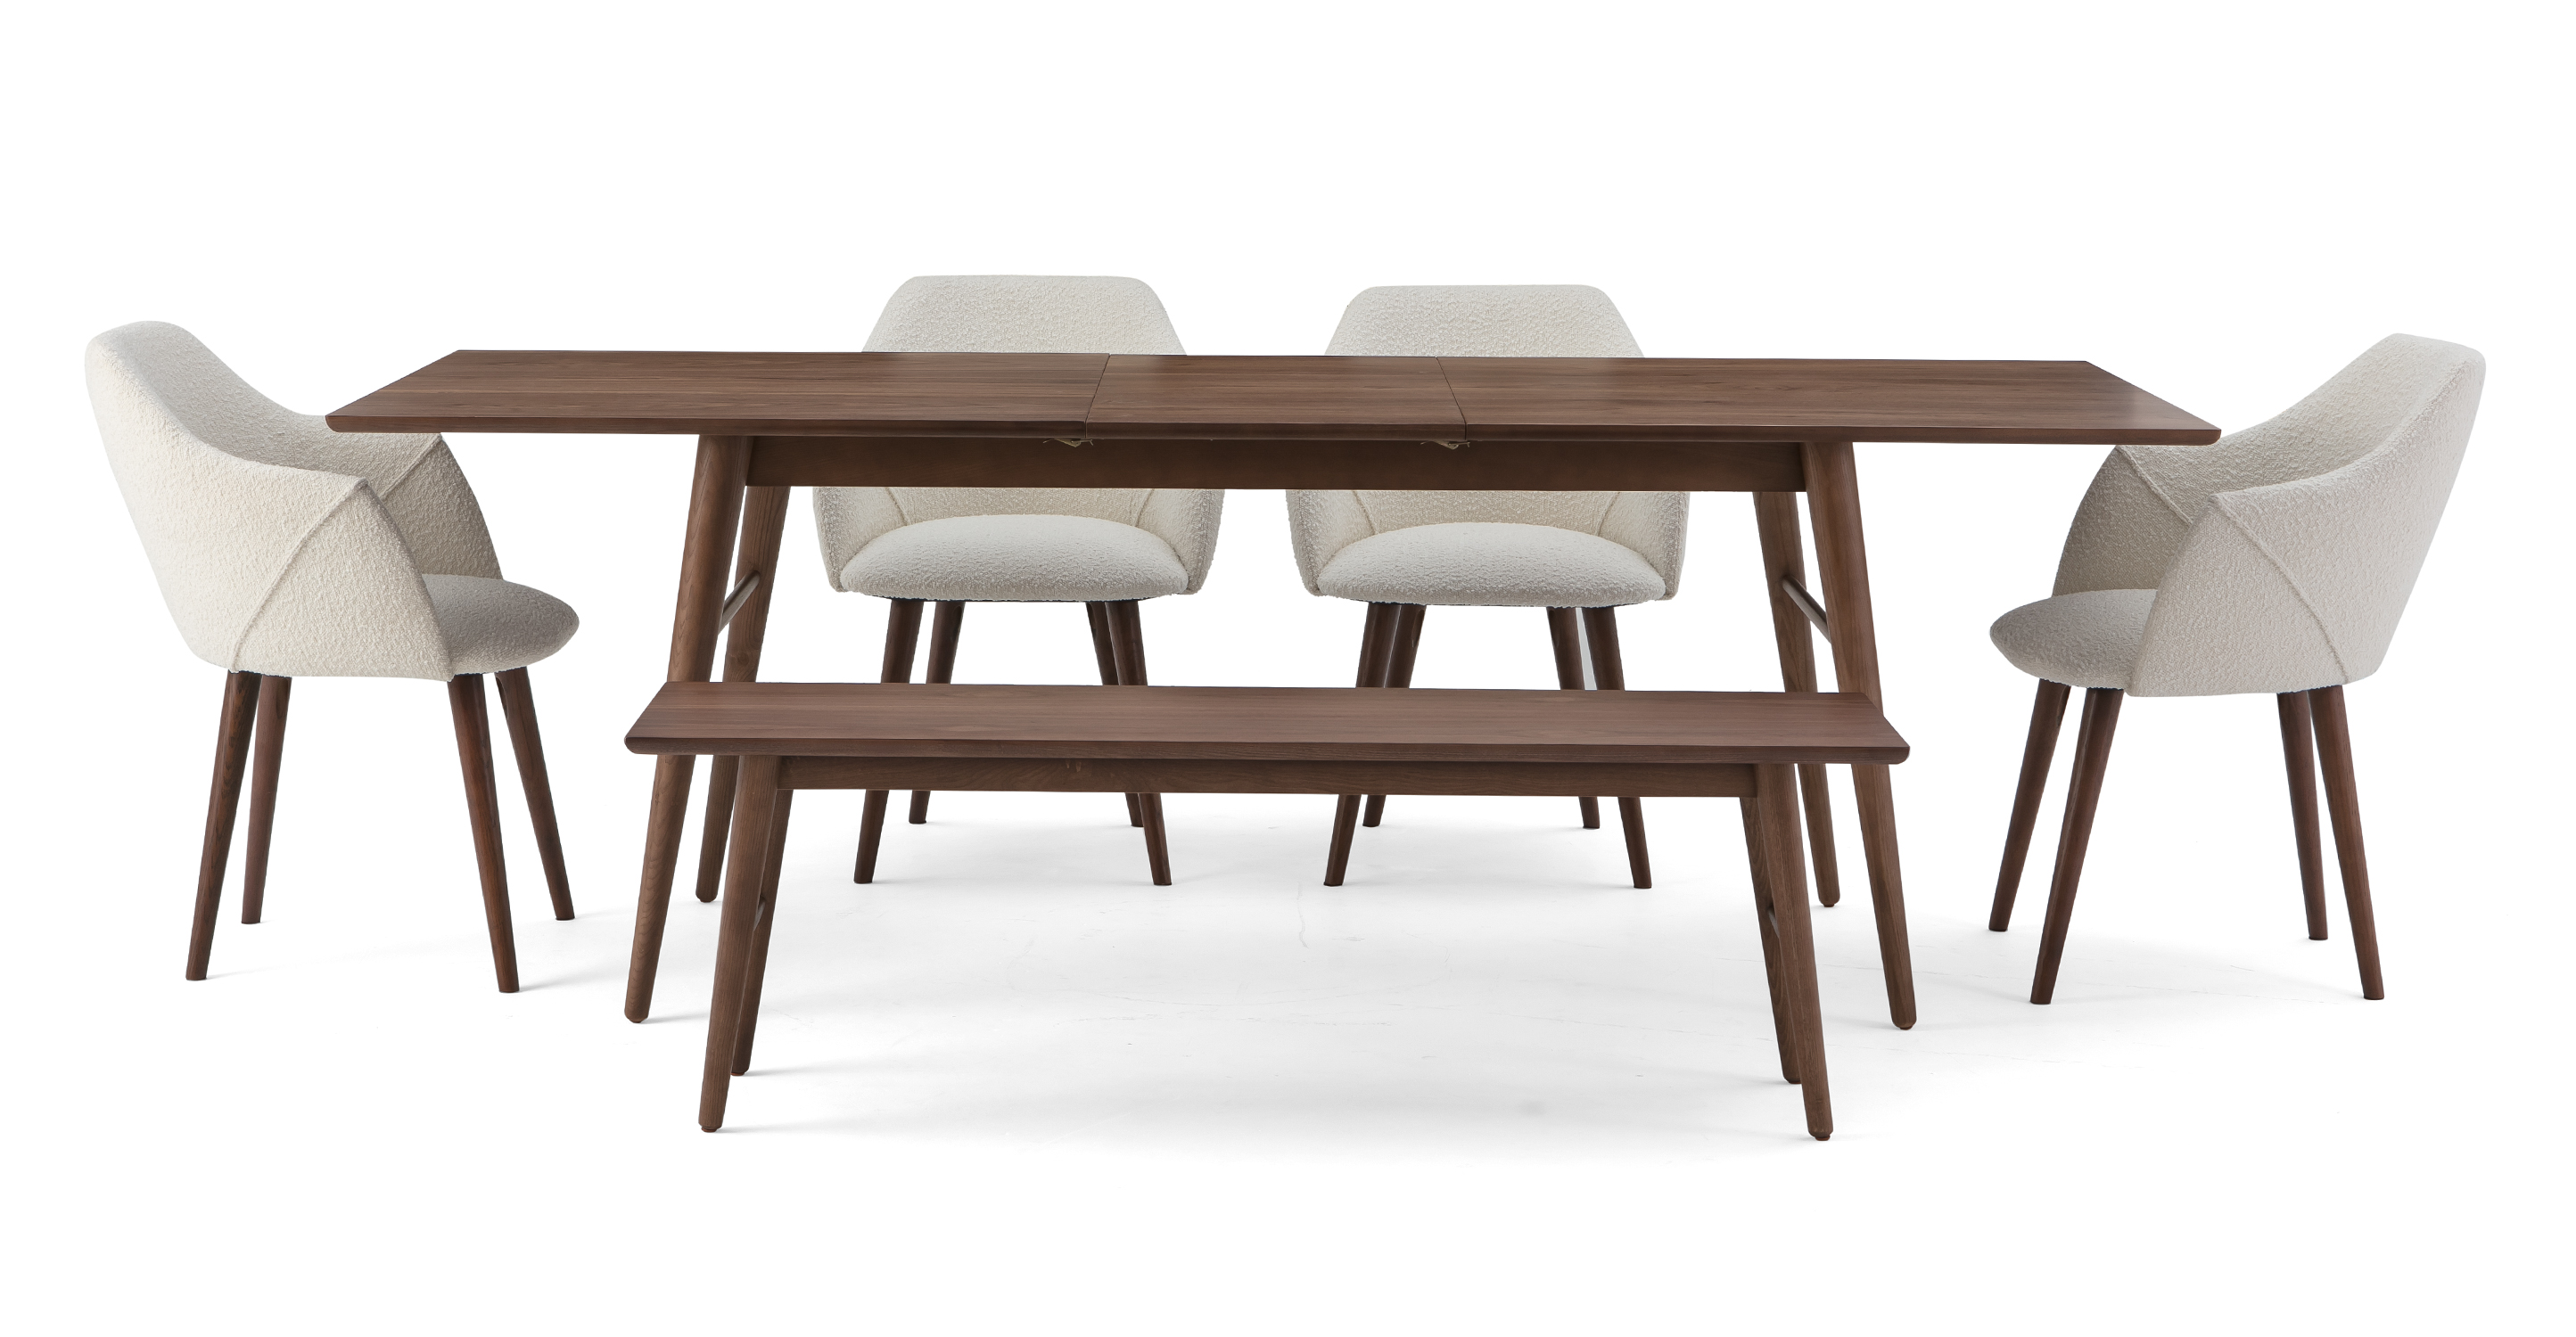 """Smiley 71-89"""" Extendable Dining Table (1) Bench (4) Berki Chairs, Walnut/Blanc Boucle"""